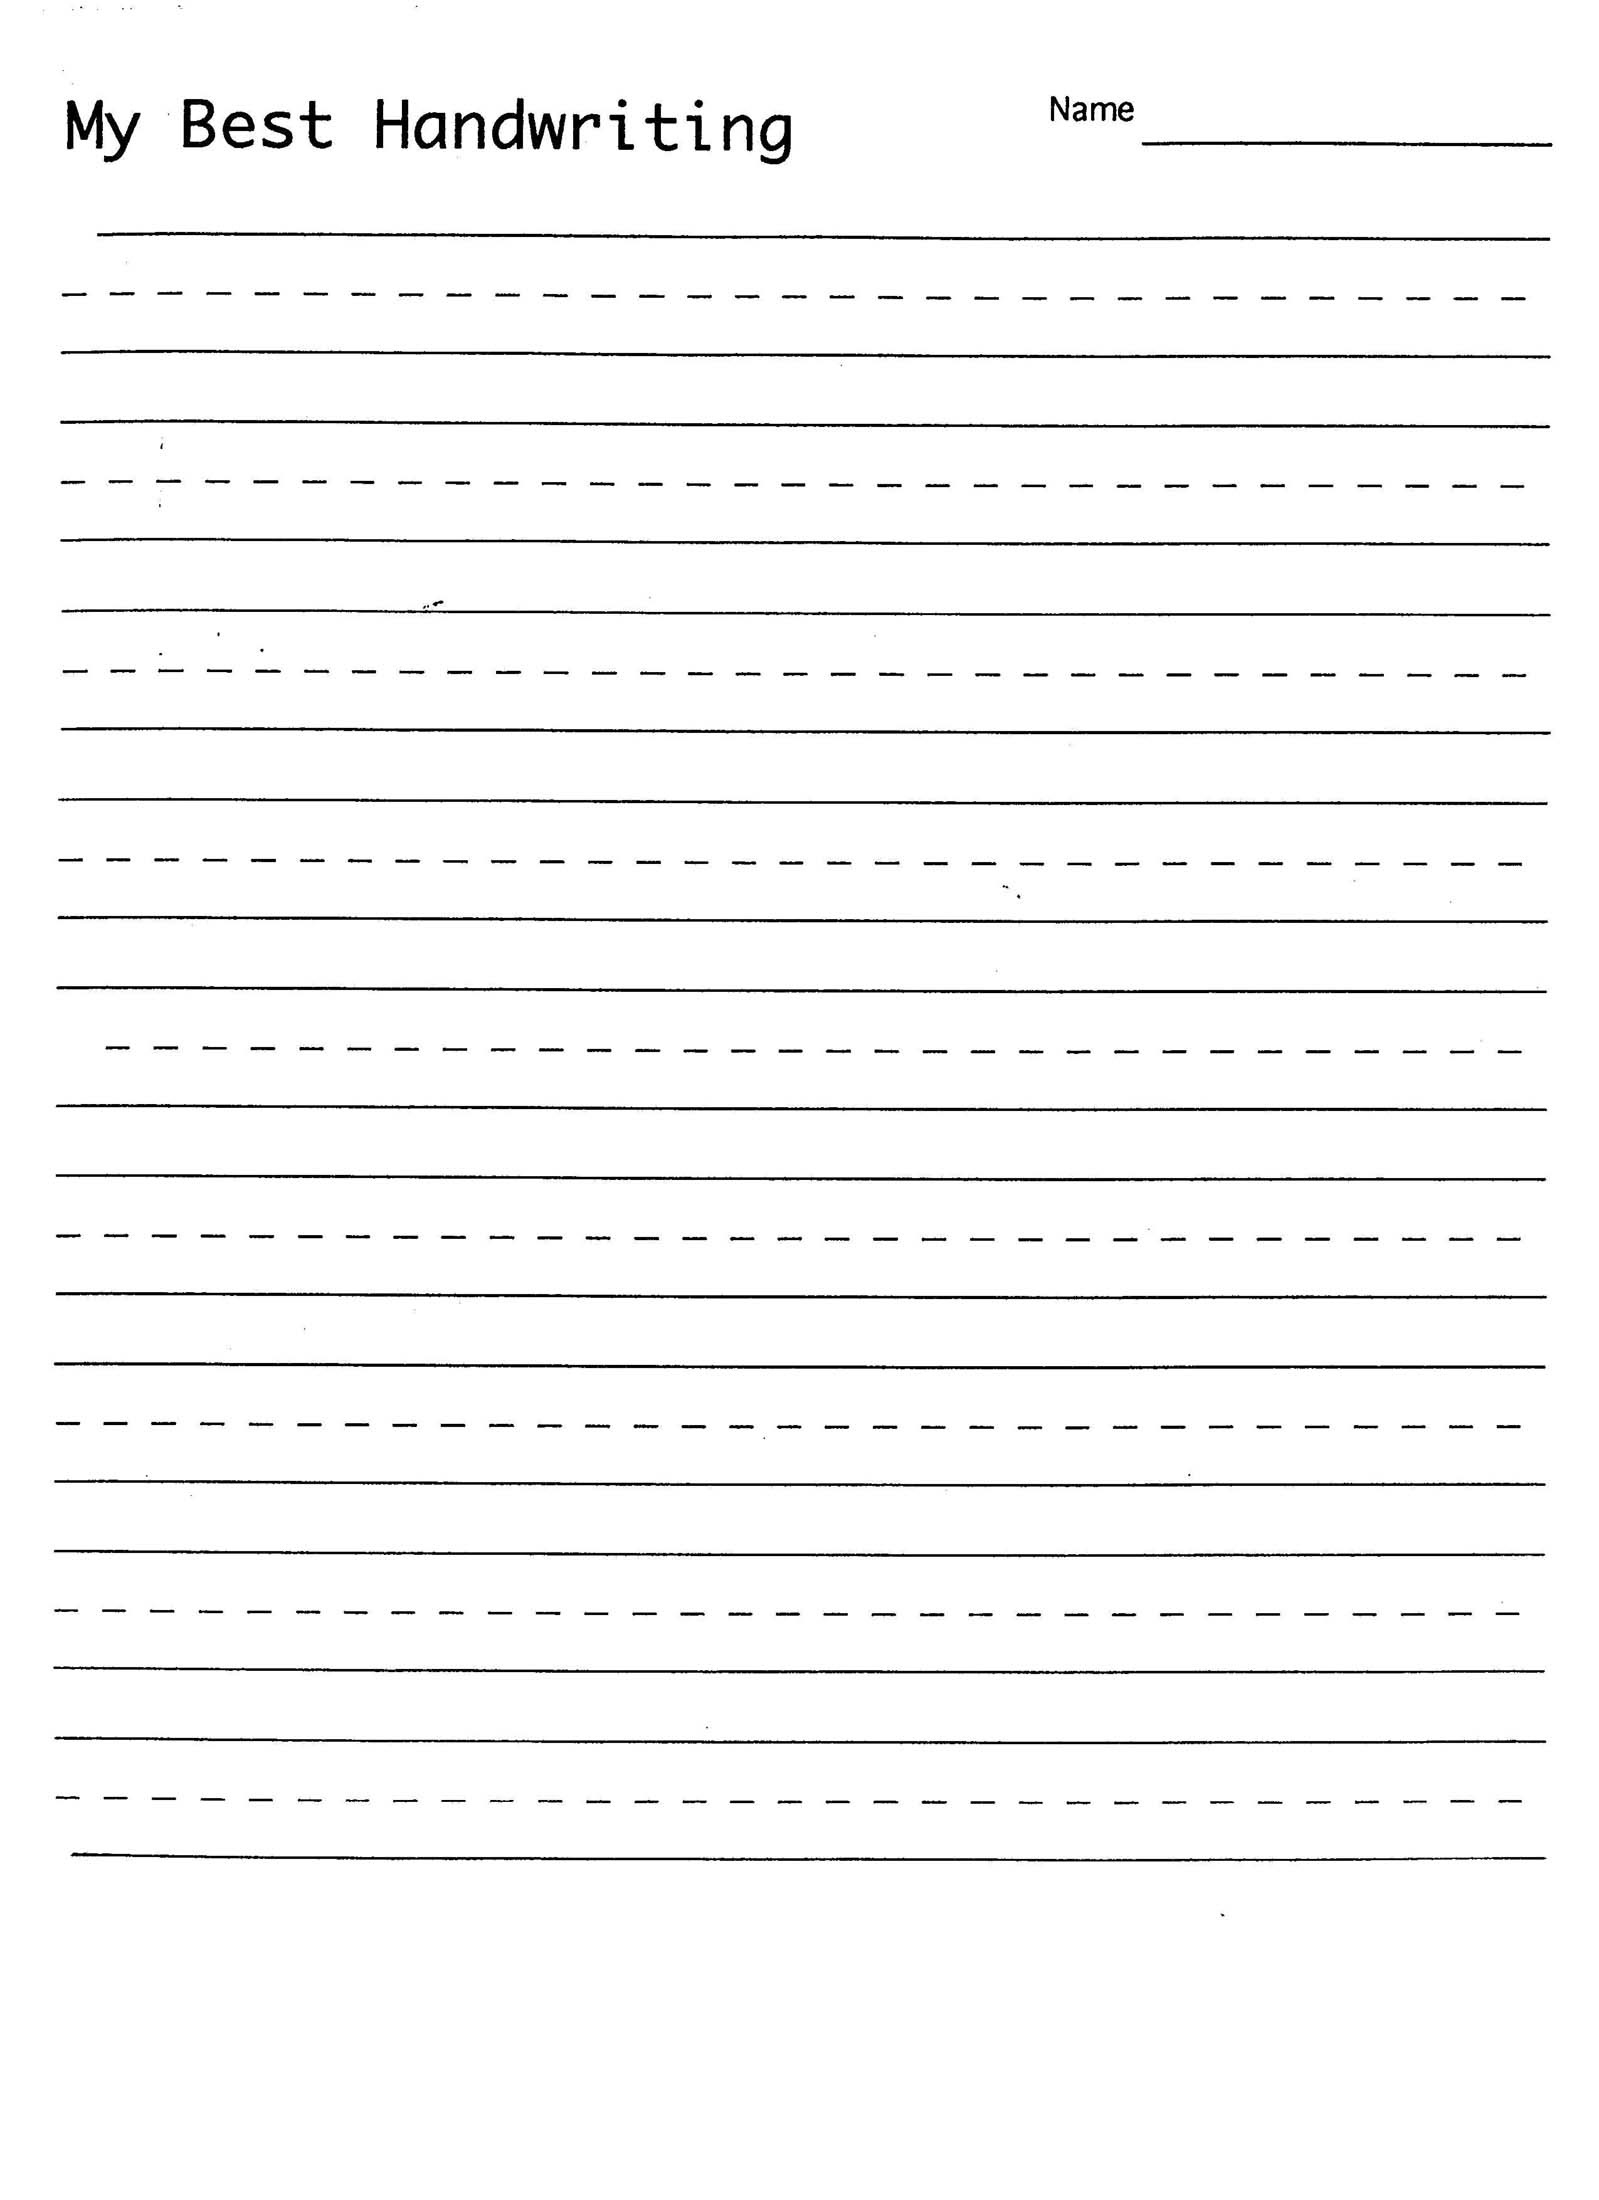 Best Printable Handwriting Sheets – Custom Handwriting Worksheets